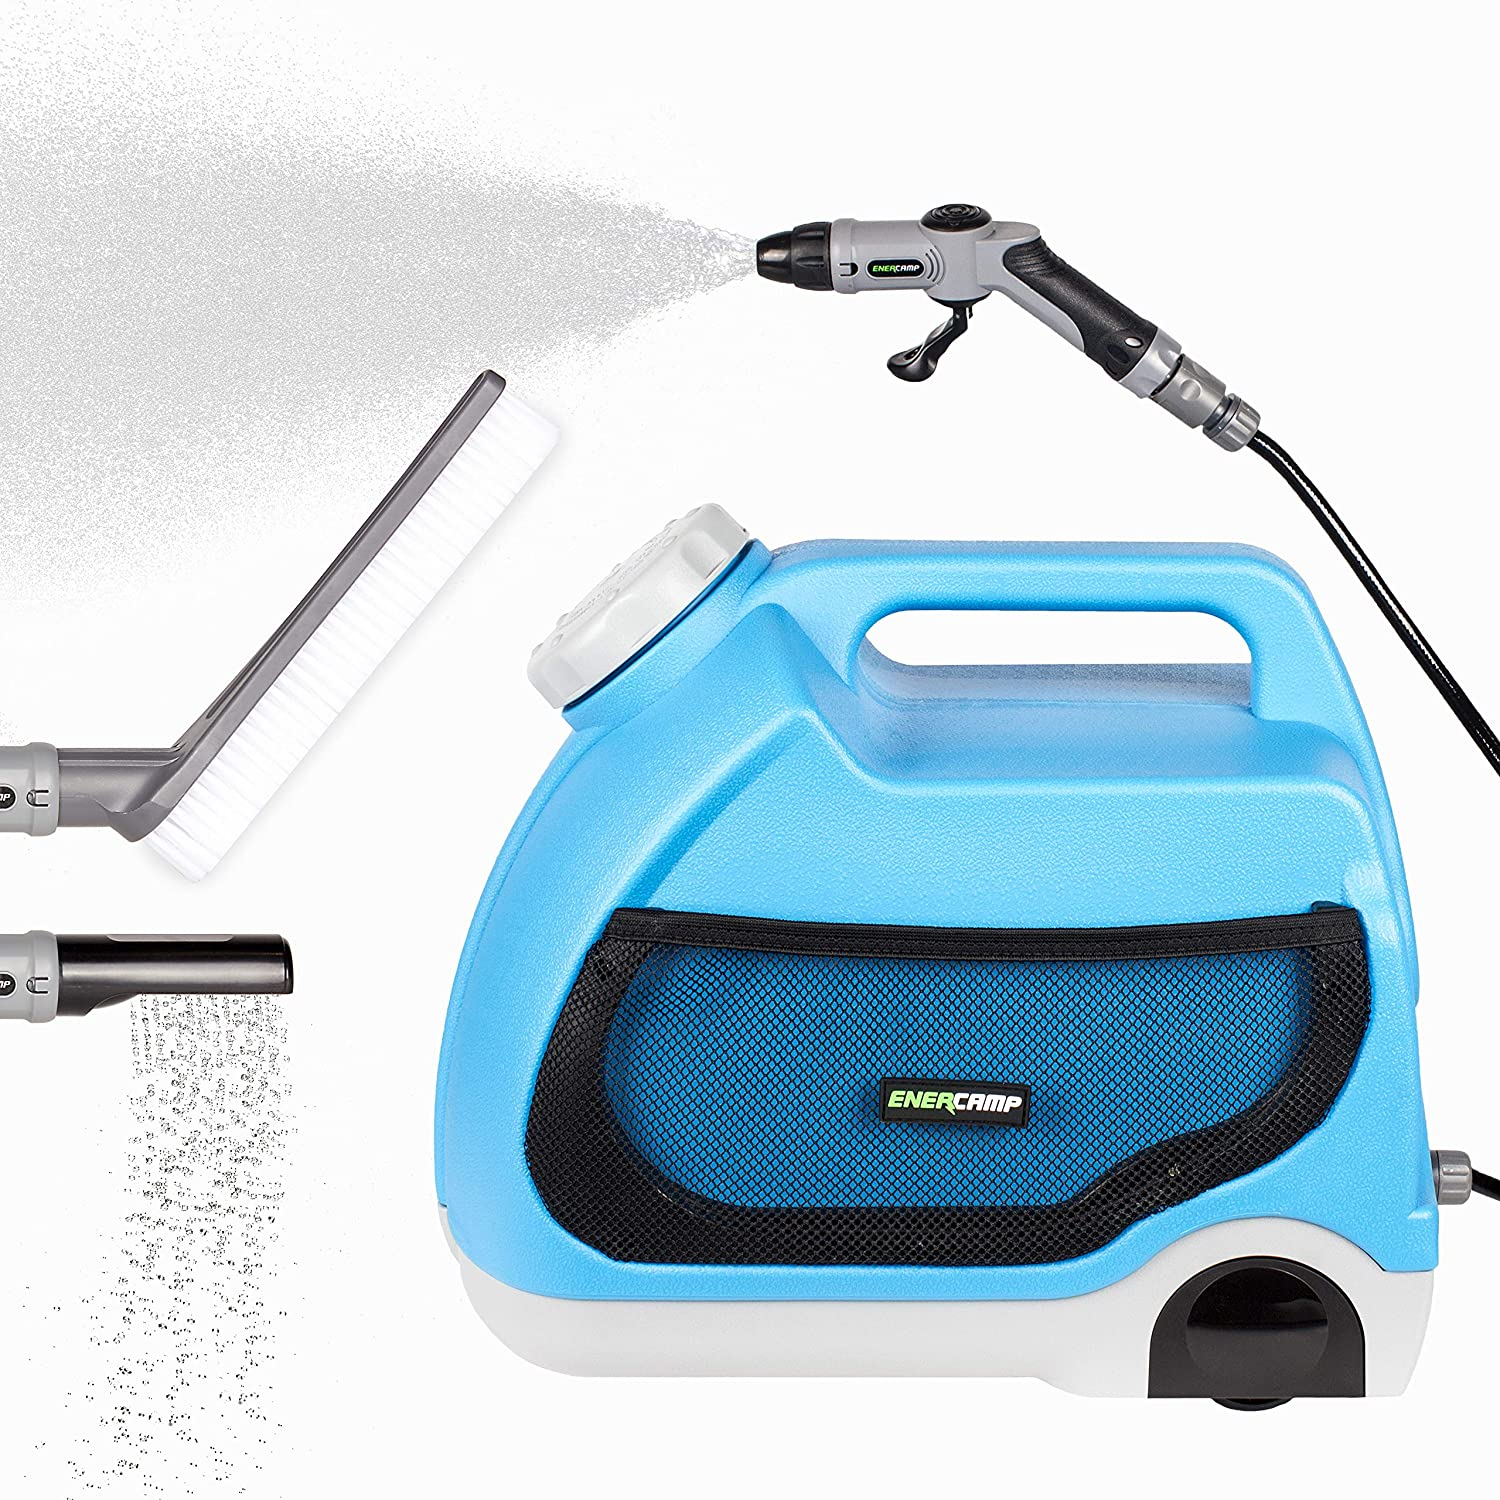 Enercamp Multipurpose Portable Spray Washer with Water Cheap mail order shopping Tank T 4 Courier shipping free shipping